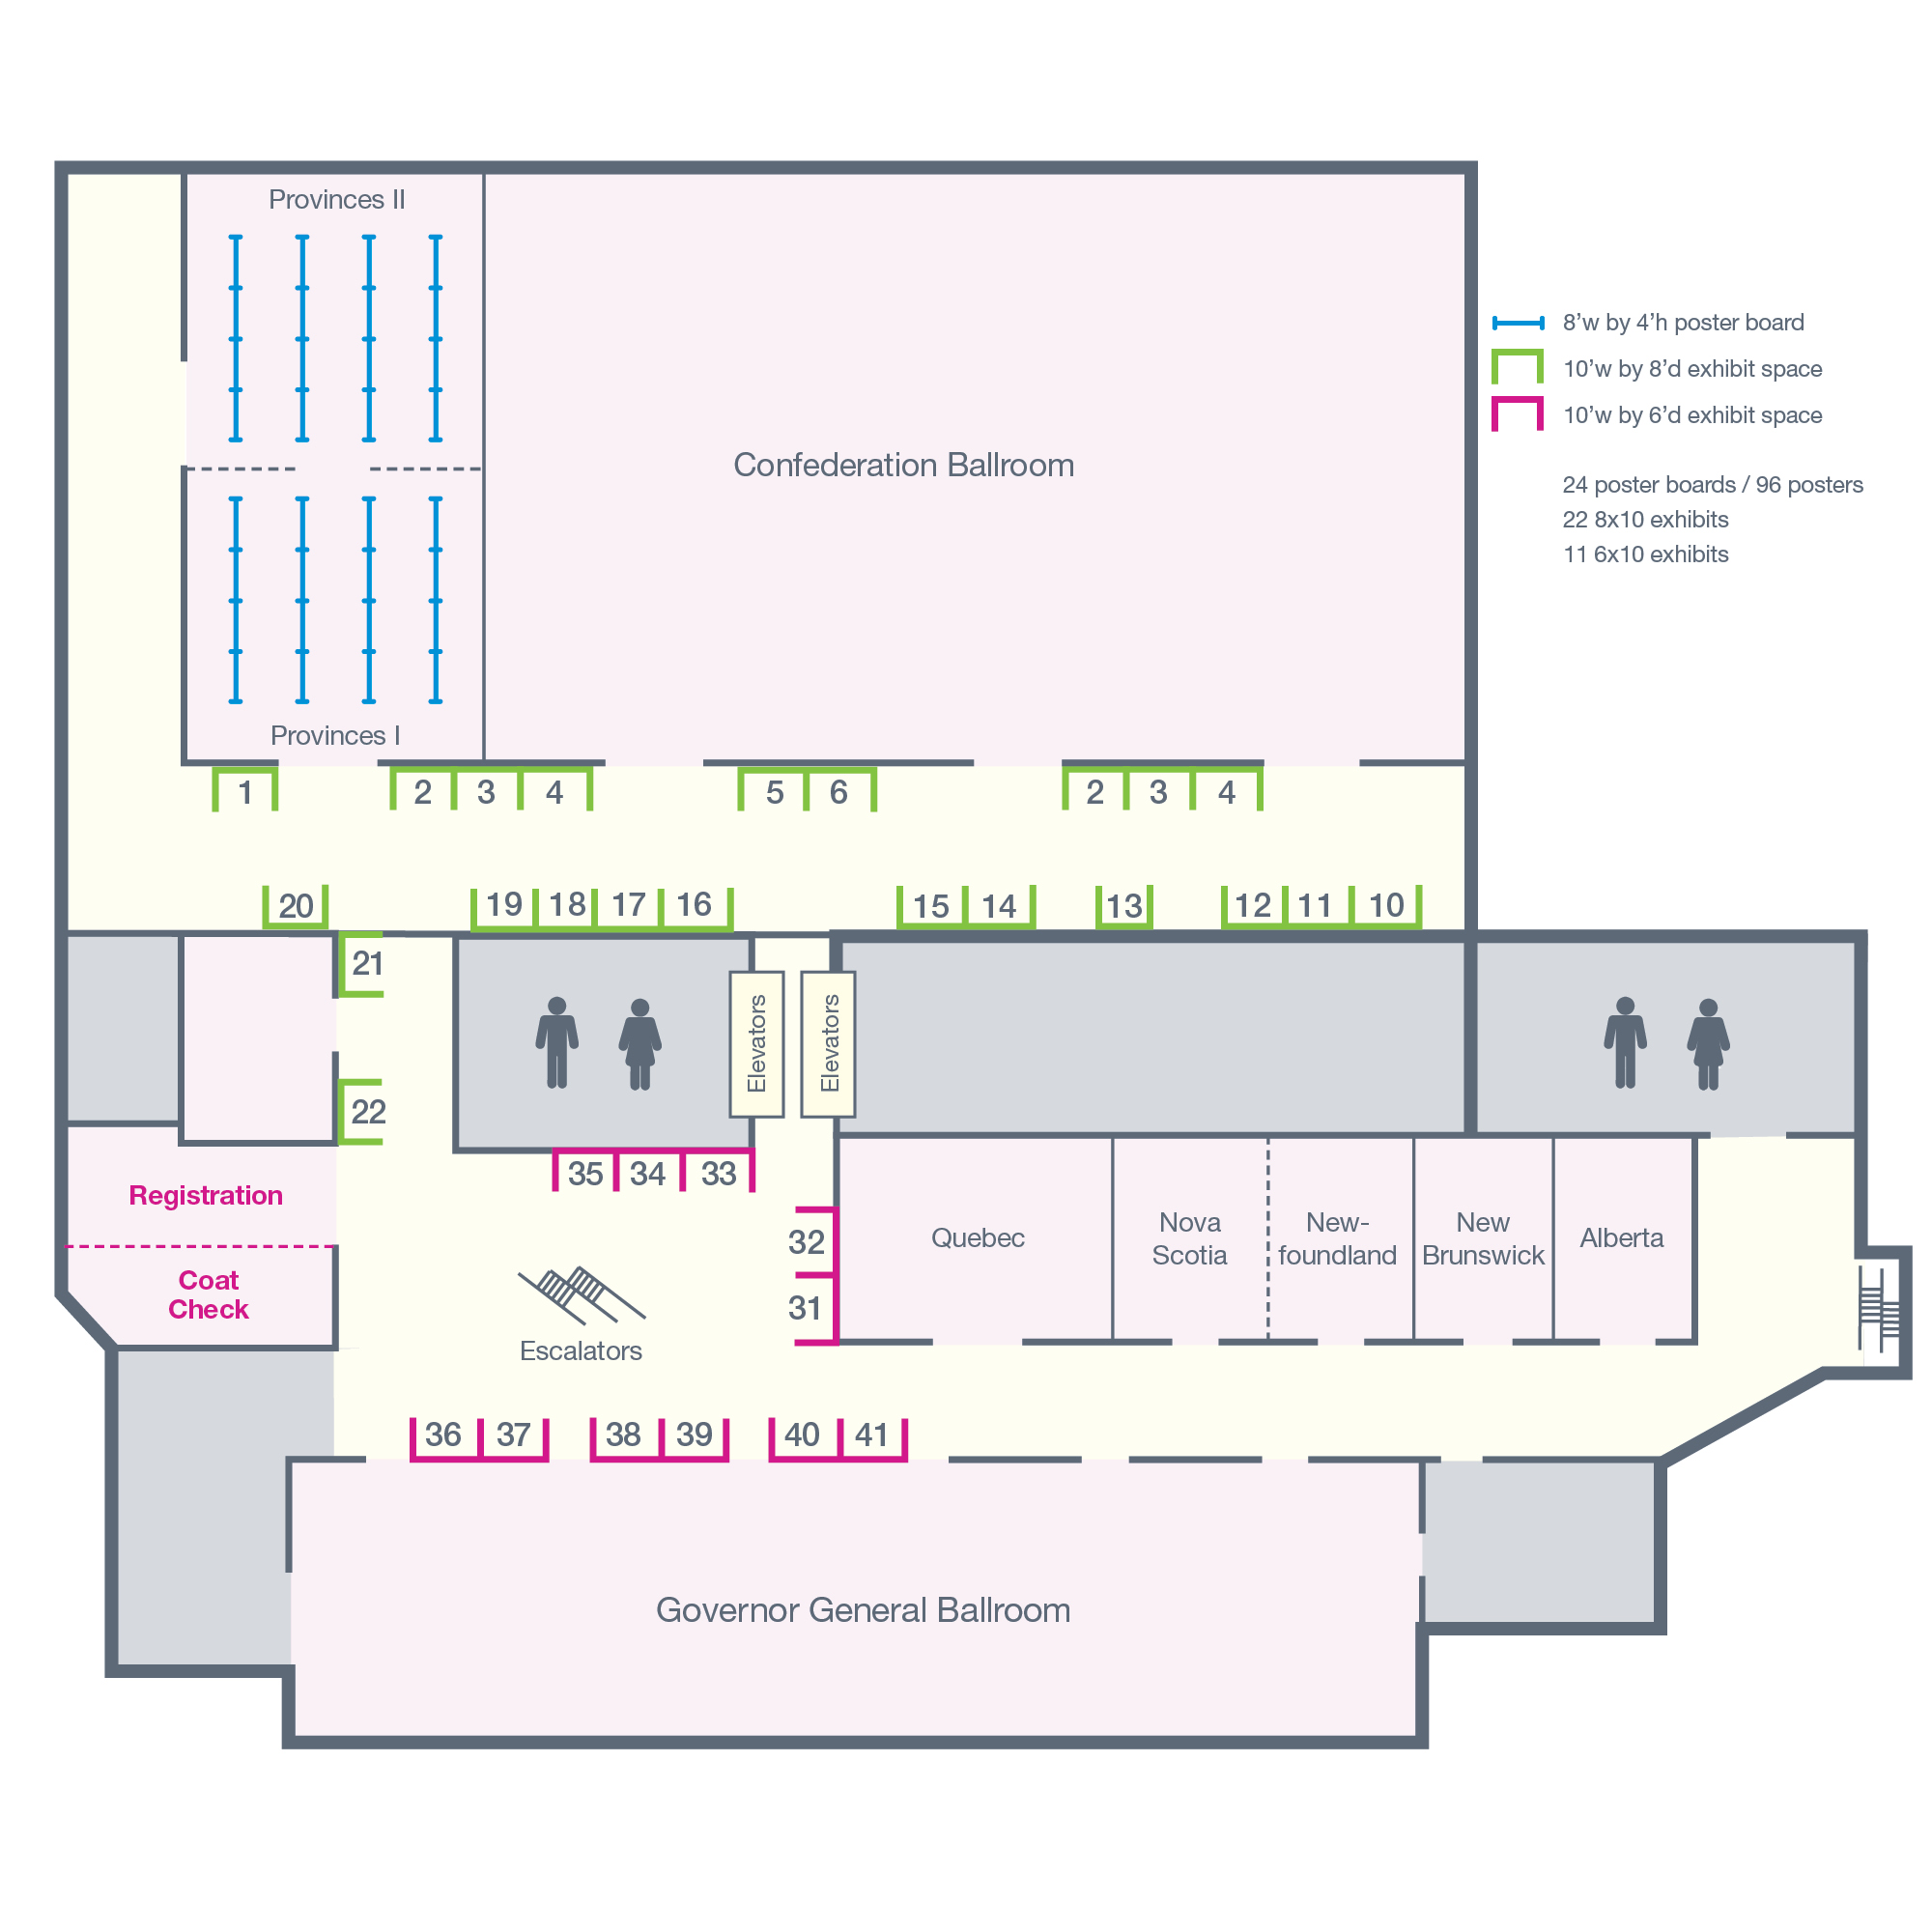 Map of the exhibit hall of the Westin Ottawa Hotel for the CCSA's Issues of Substance conference 2019.